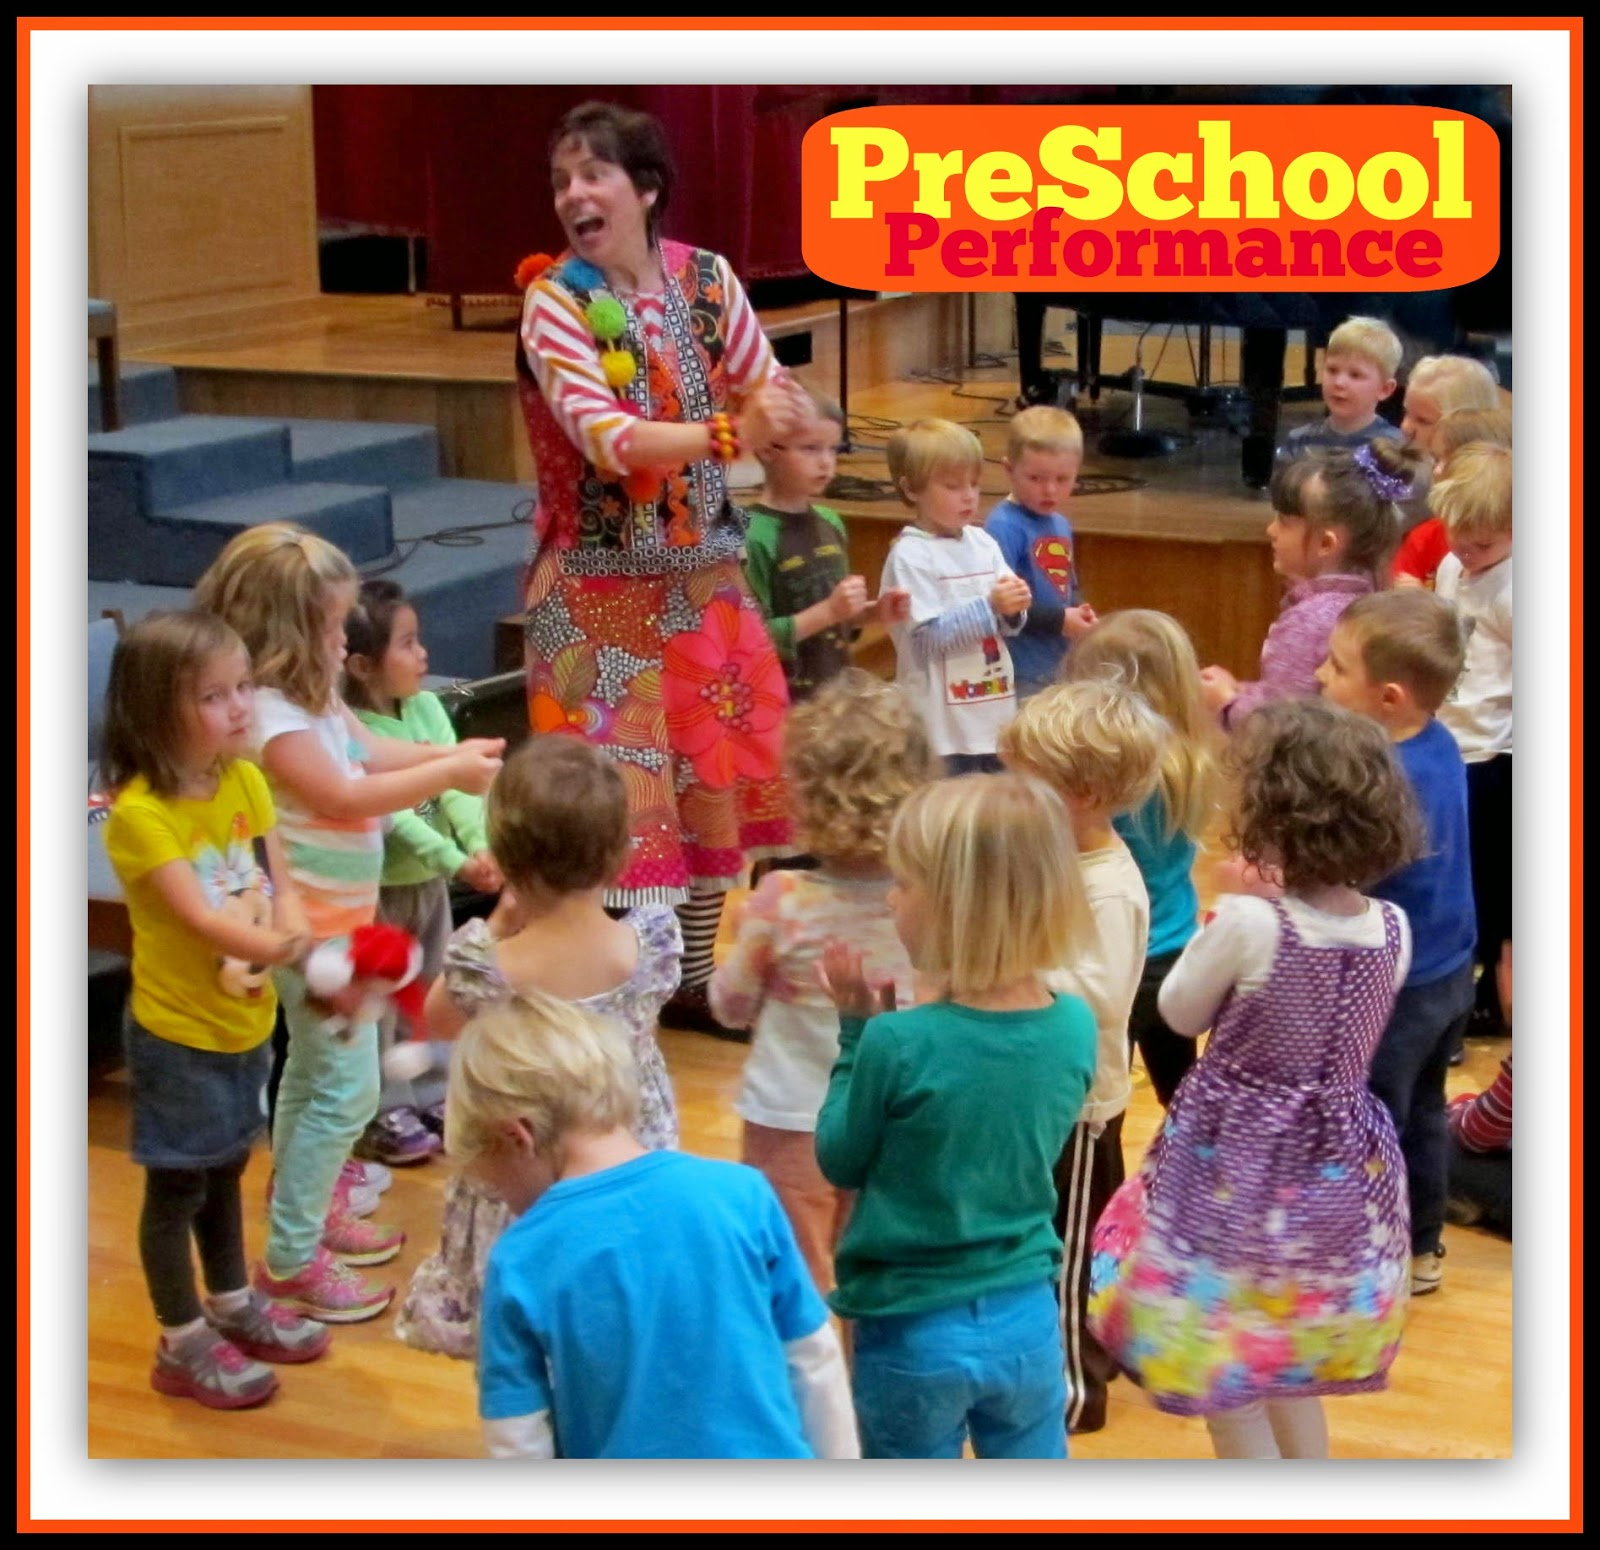 Debbie Clement Performs at Preschool!